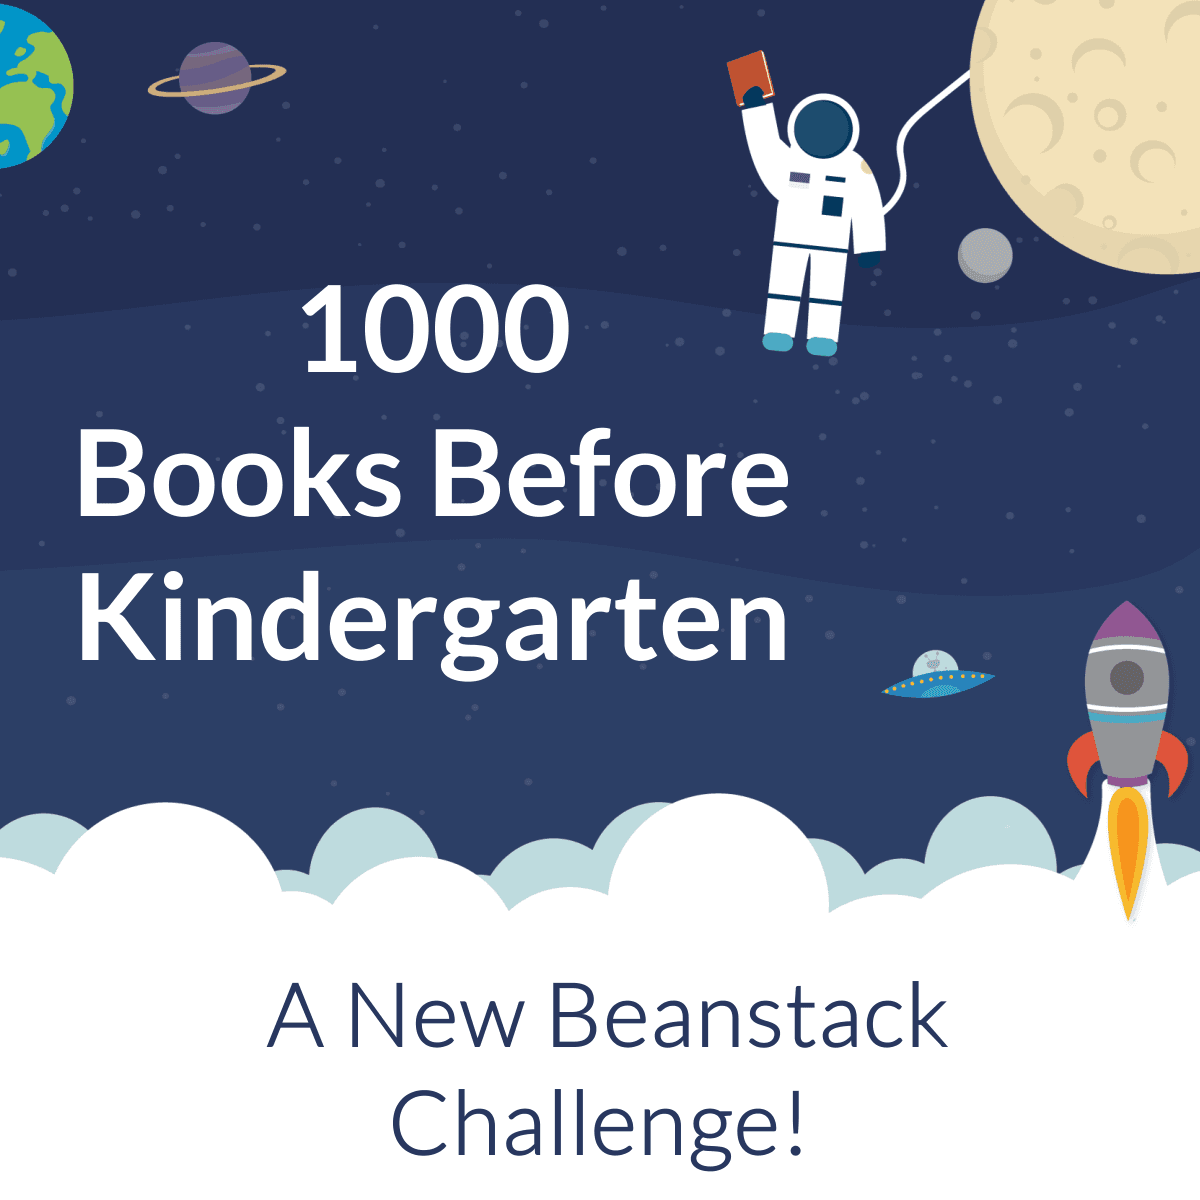 1000 Books Before Kindergarten A Newbeanstack challenge with images from space